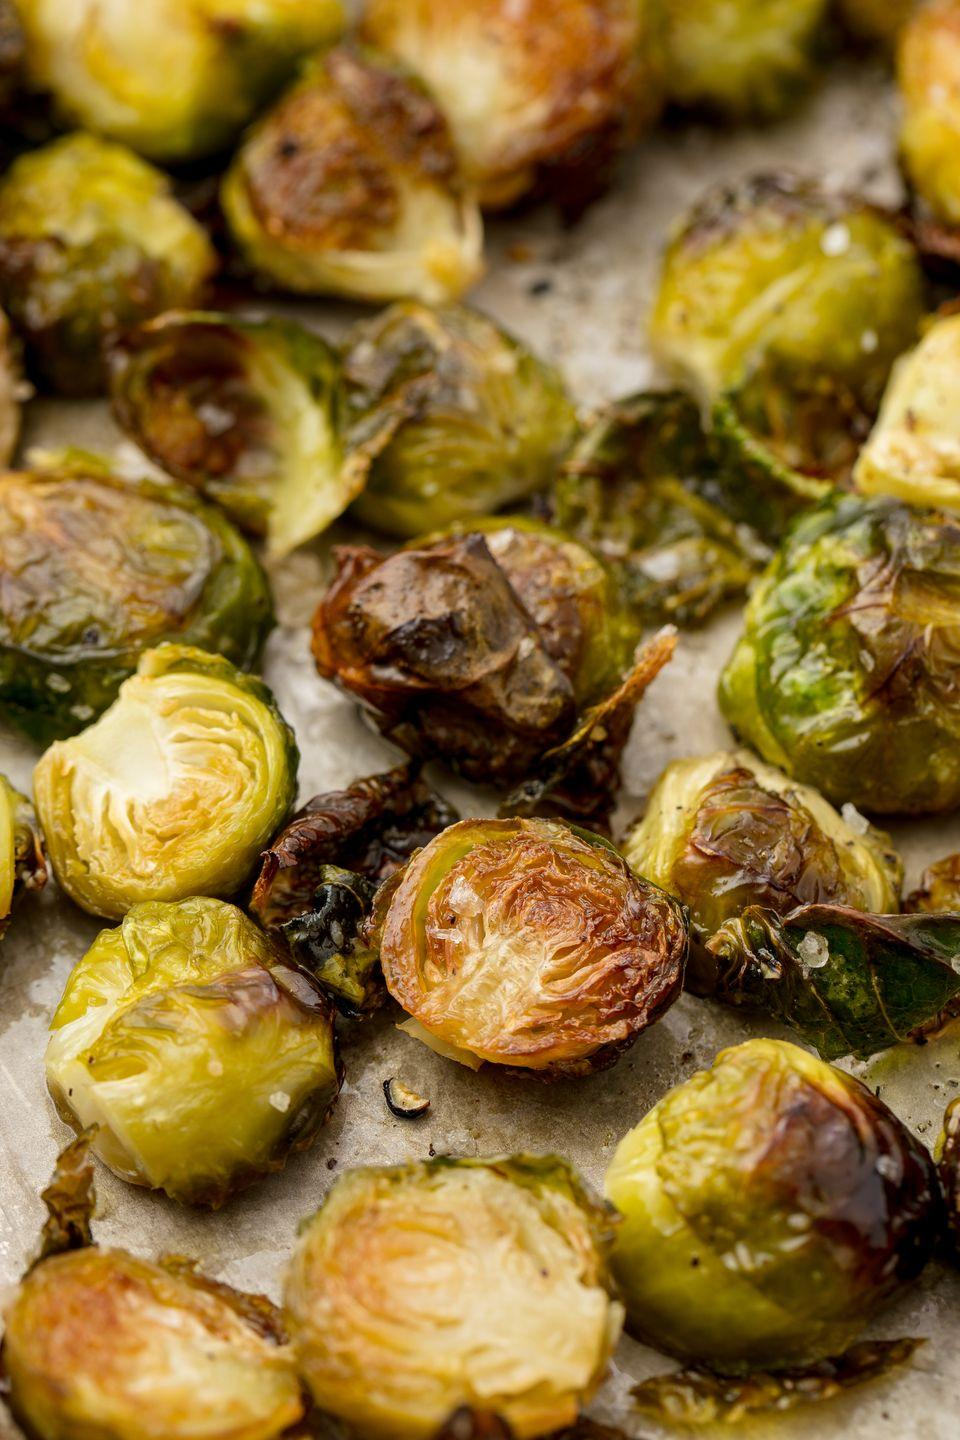 """<p>There is nothing more perfect than roasted brussels sprouts.</p><p>Get the recipe from <a href=""""https://www.delish.com/cooking/recipe-ideas/recipes/a55335/best-roasted-brussel-sprouts-recipe/"""" rel=""""nofollow noopener"""" target=""""_blank"""" data-ylk=""""slk:Delish"""" class=""""link rapid-noclick-resp"""">Delish</a>.</p>"""